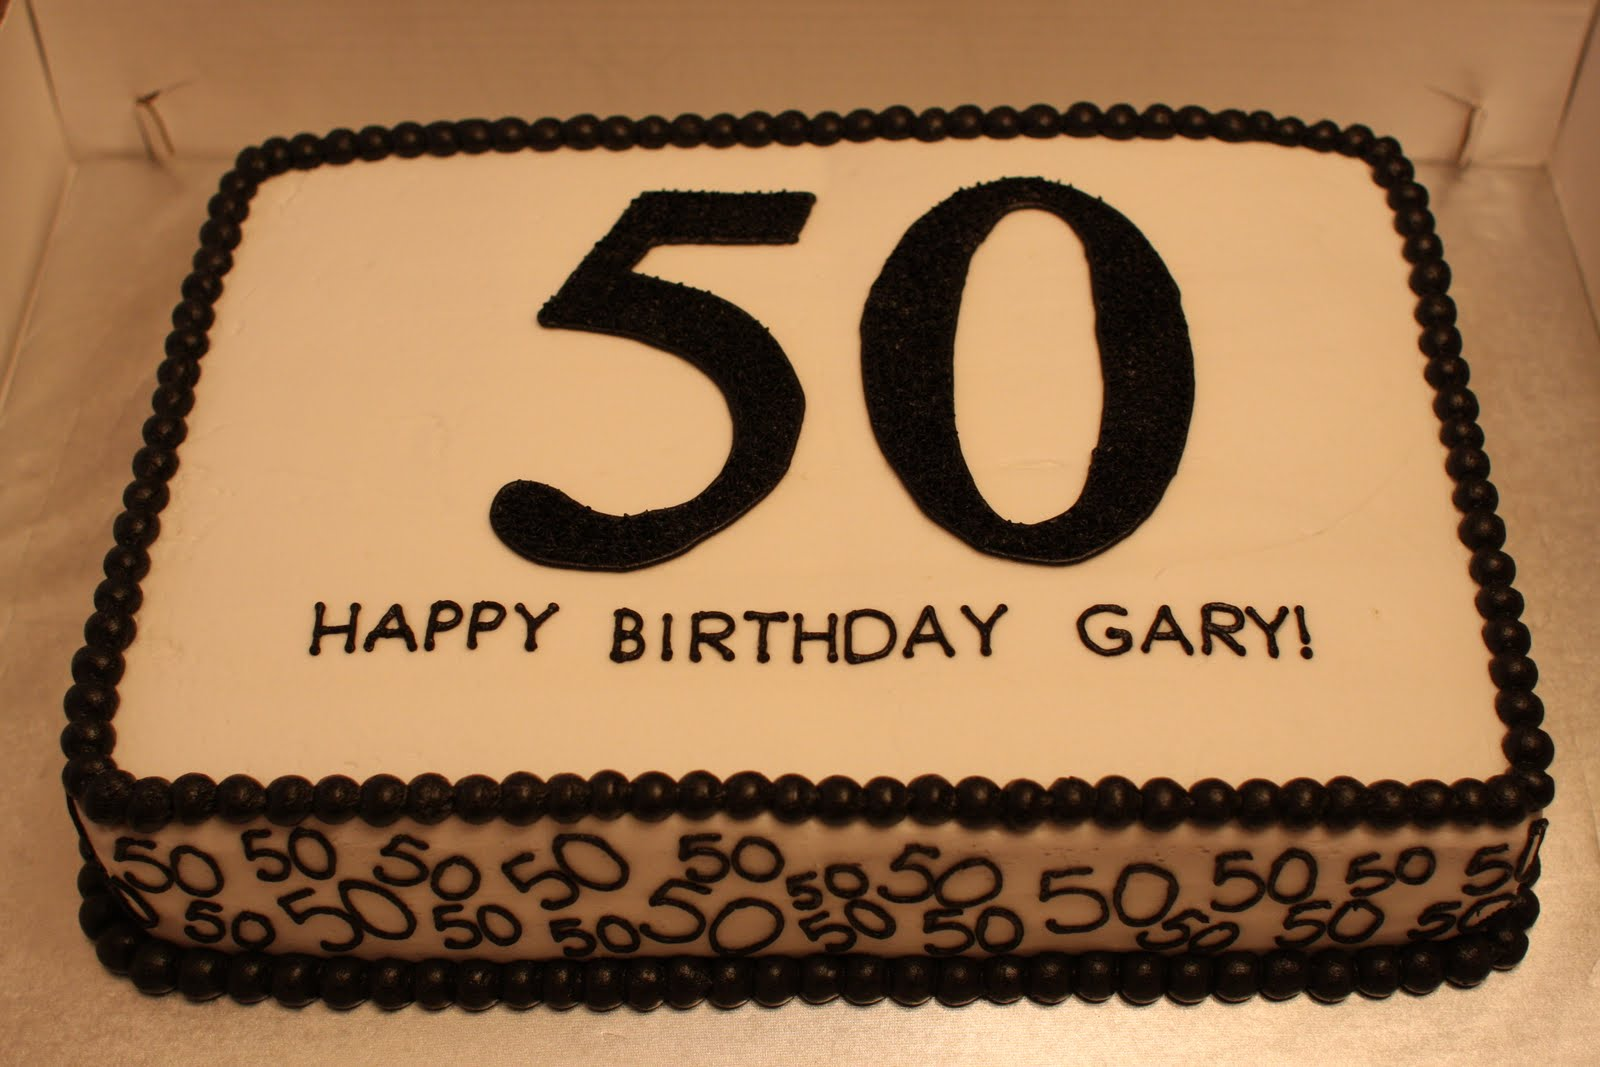 The buttercream bakery 50th birthday sheet cake for 50th birthday cake decoration